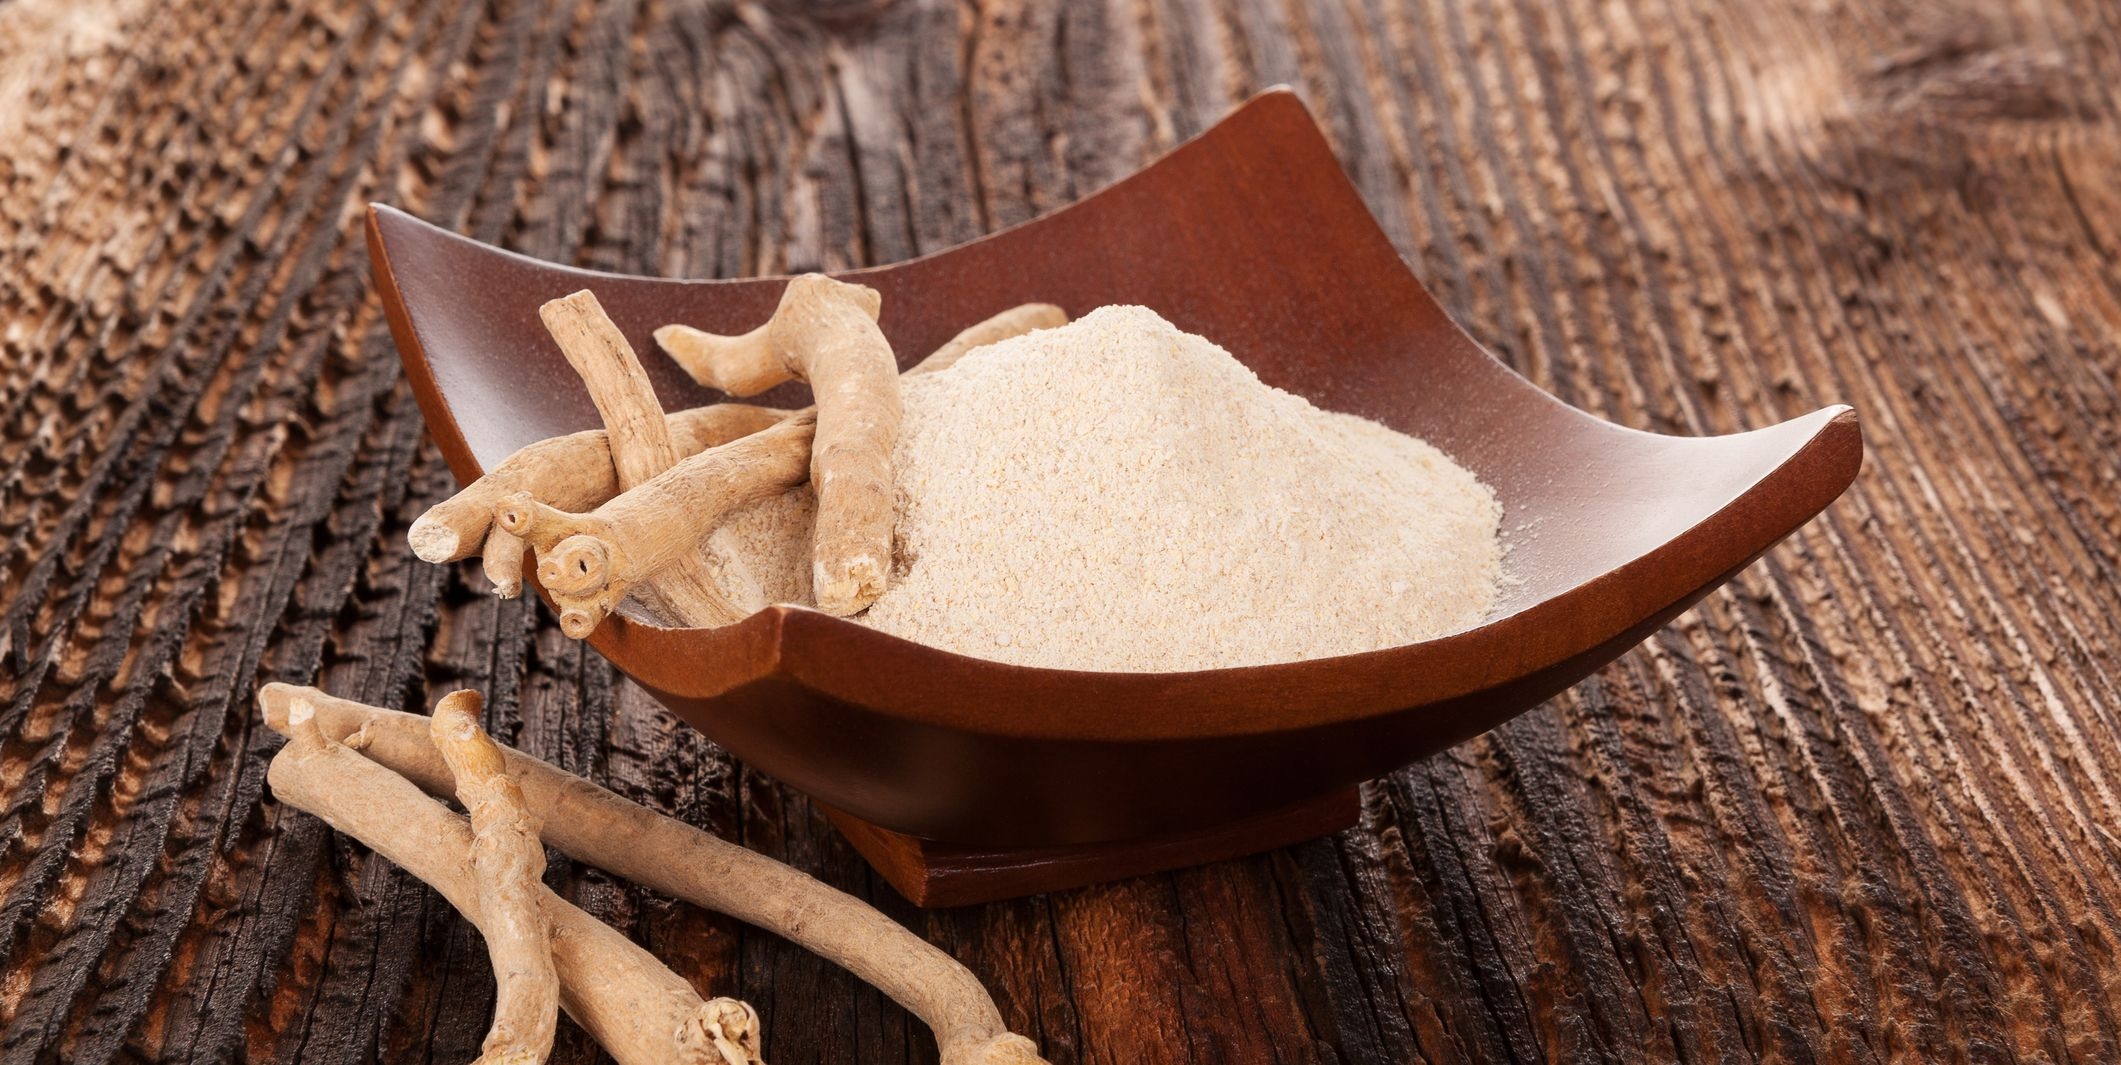 ashwagandha root and powder